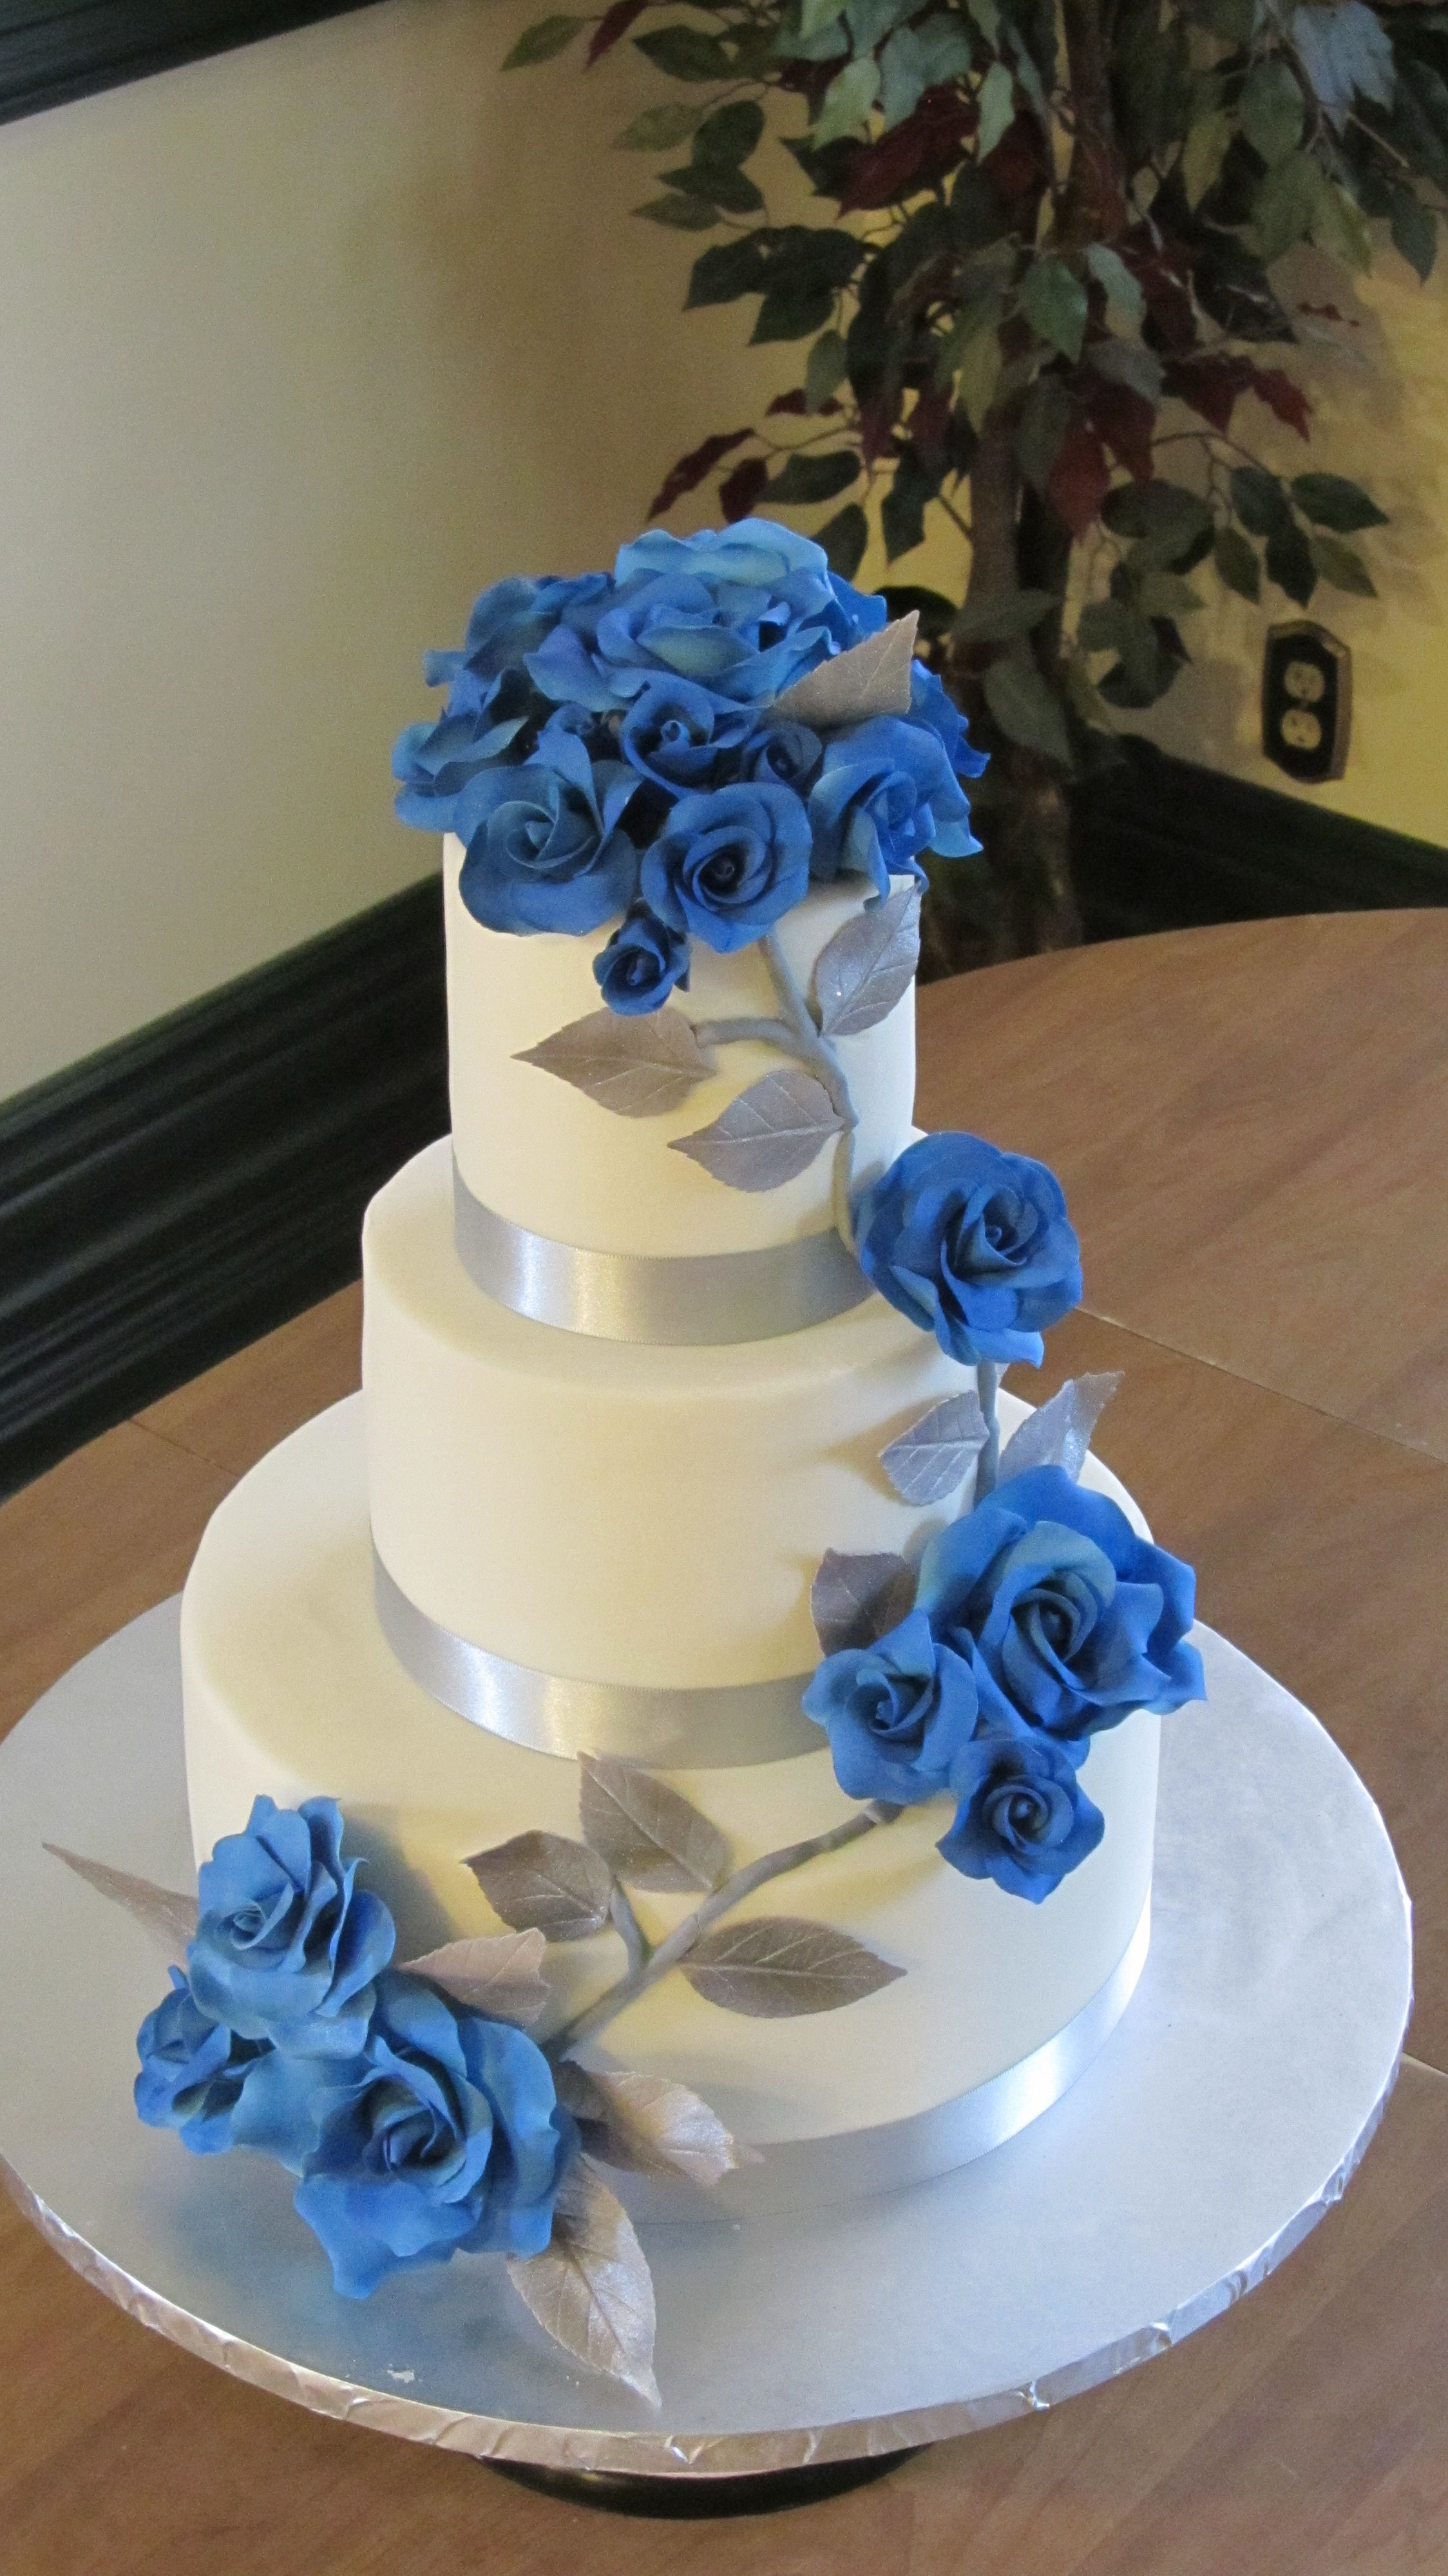 silver wedding cakes with roses sapphire roses and silver leaves lemon rasp cake iced 19901